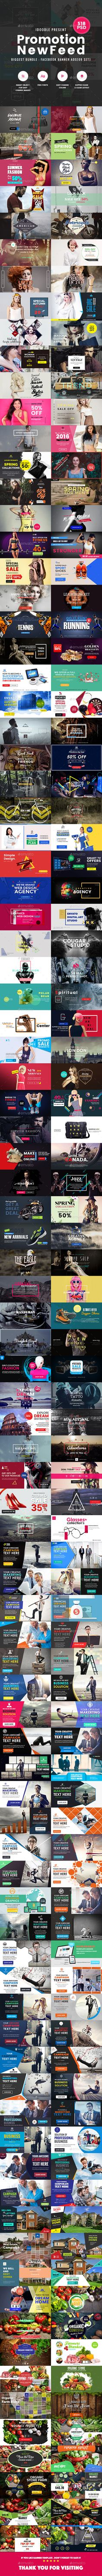 [Biggest Bundle] - Promotion Facebook Banner Ads - 518 PSD [02 Size Each] - Banners & Ads Web Elements